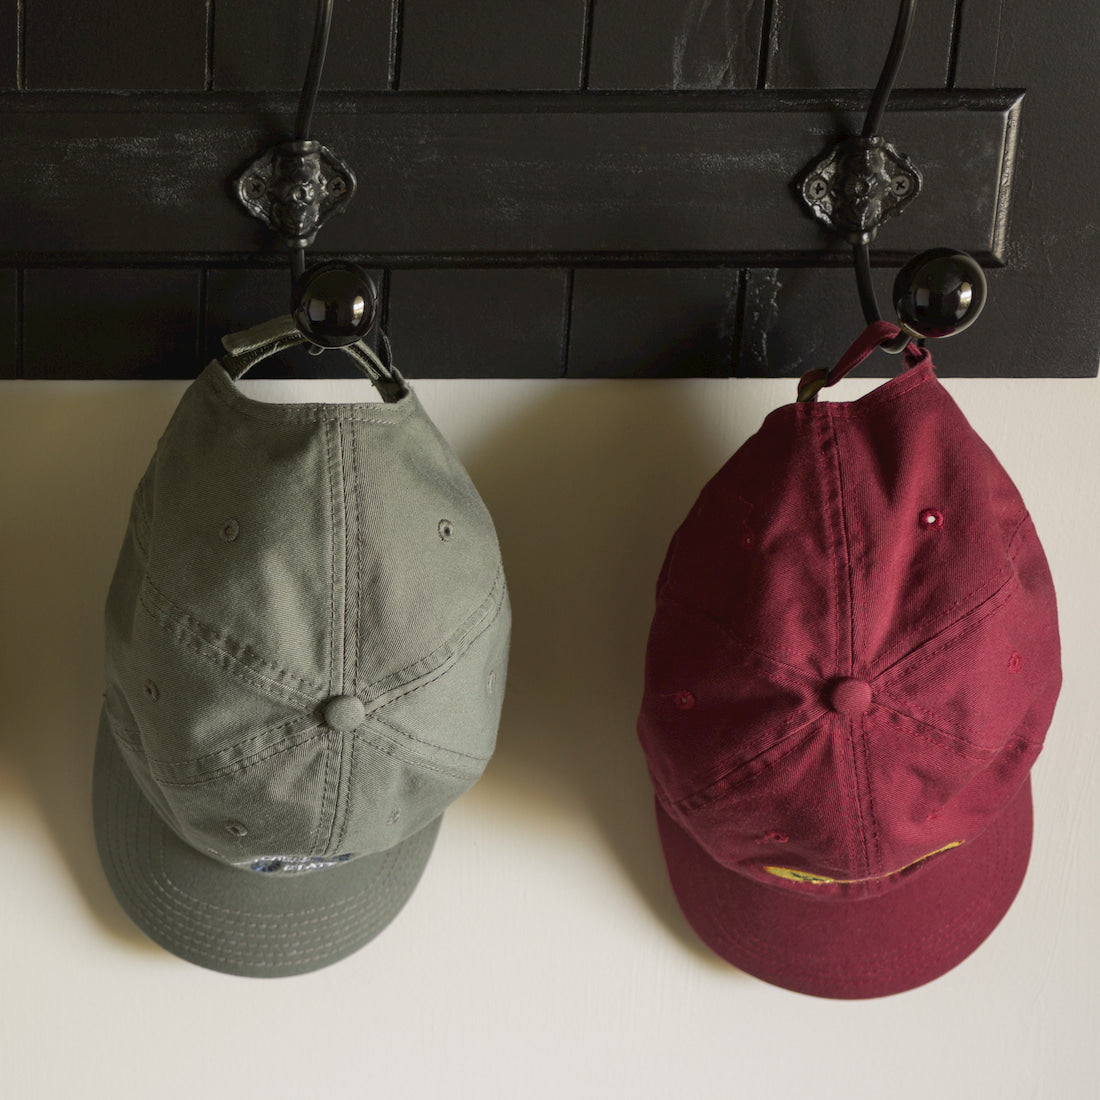 How Should You Store Your Hat?